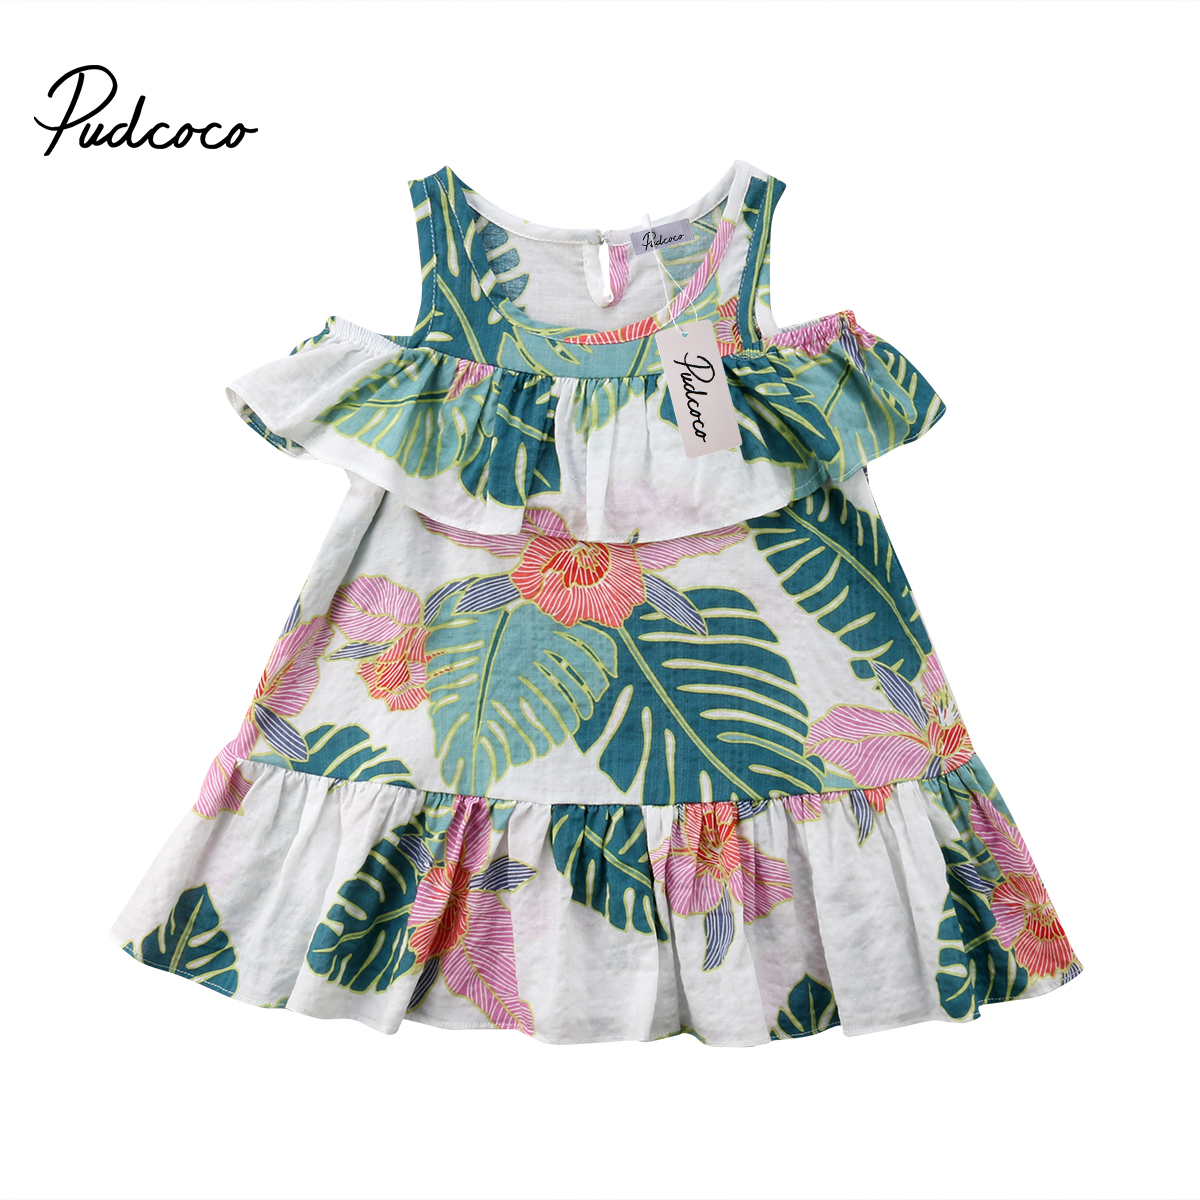 Pudcoco  Kids Baby Girl Princess Off Shoulder Leaves Print Dress Clothes 1-6Years Helen115